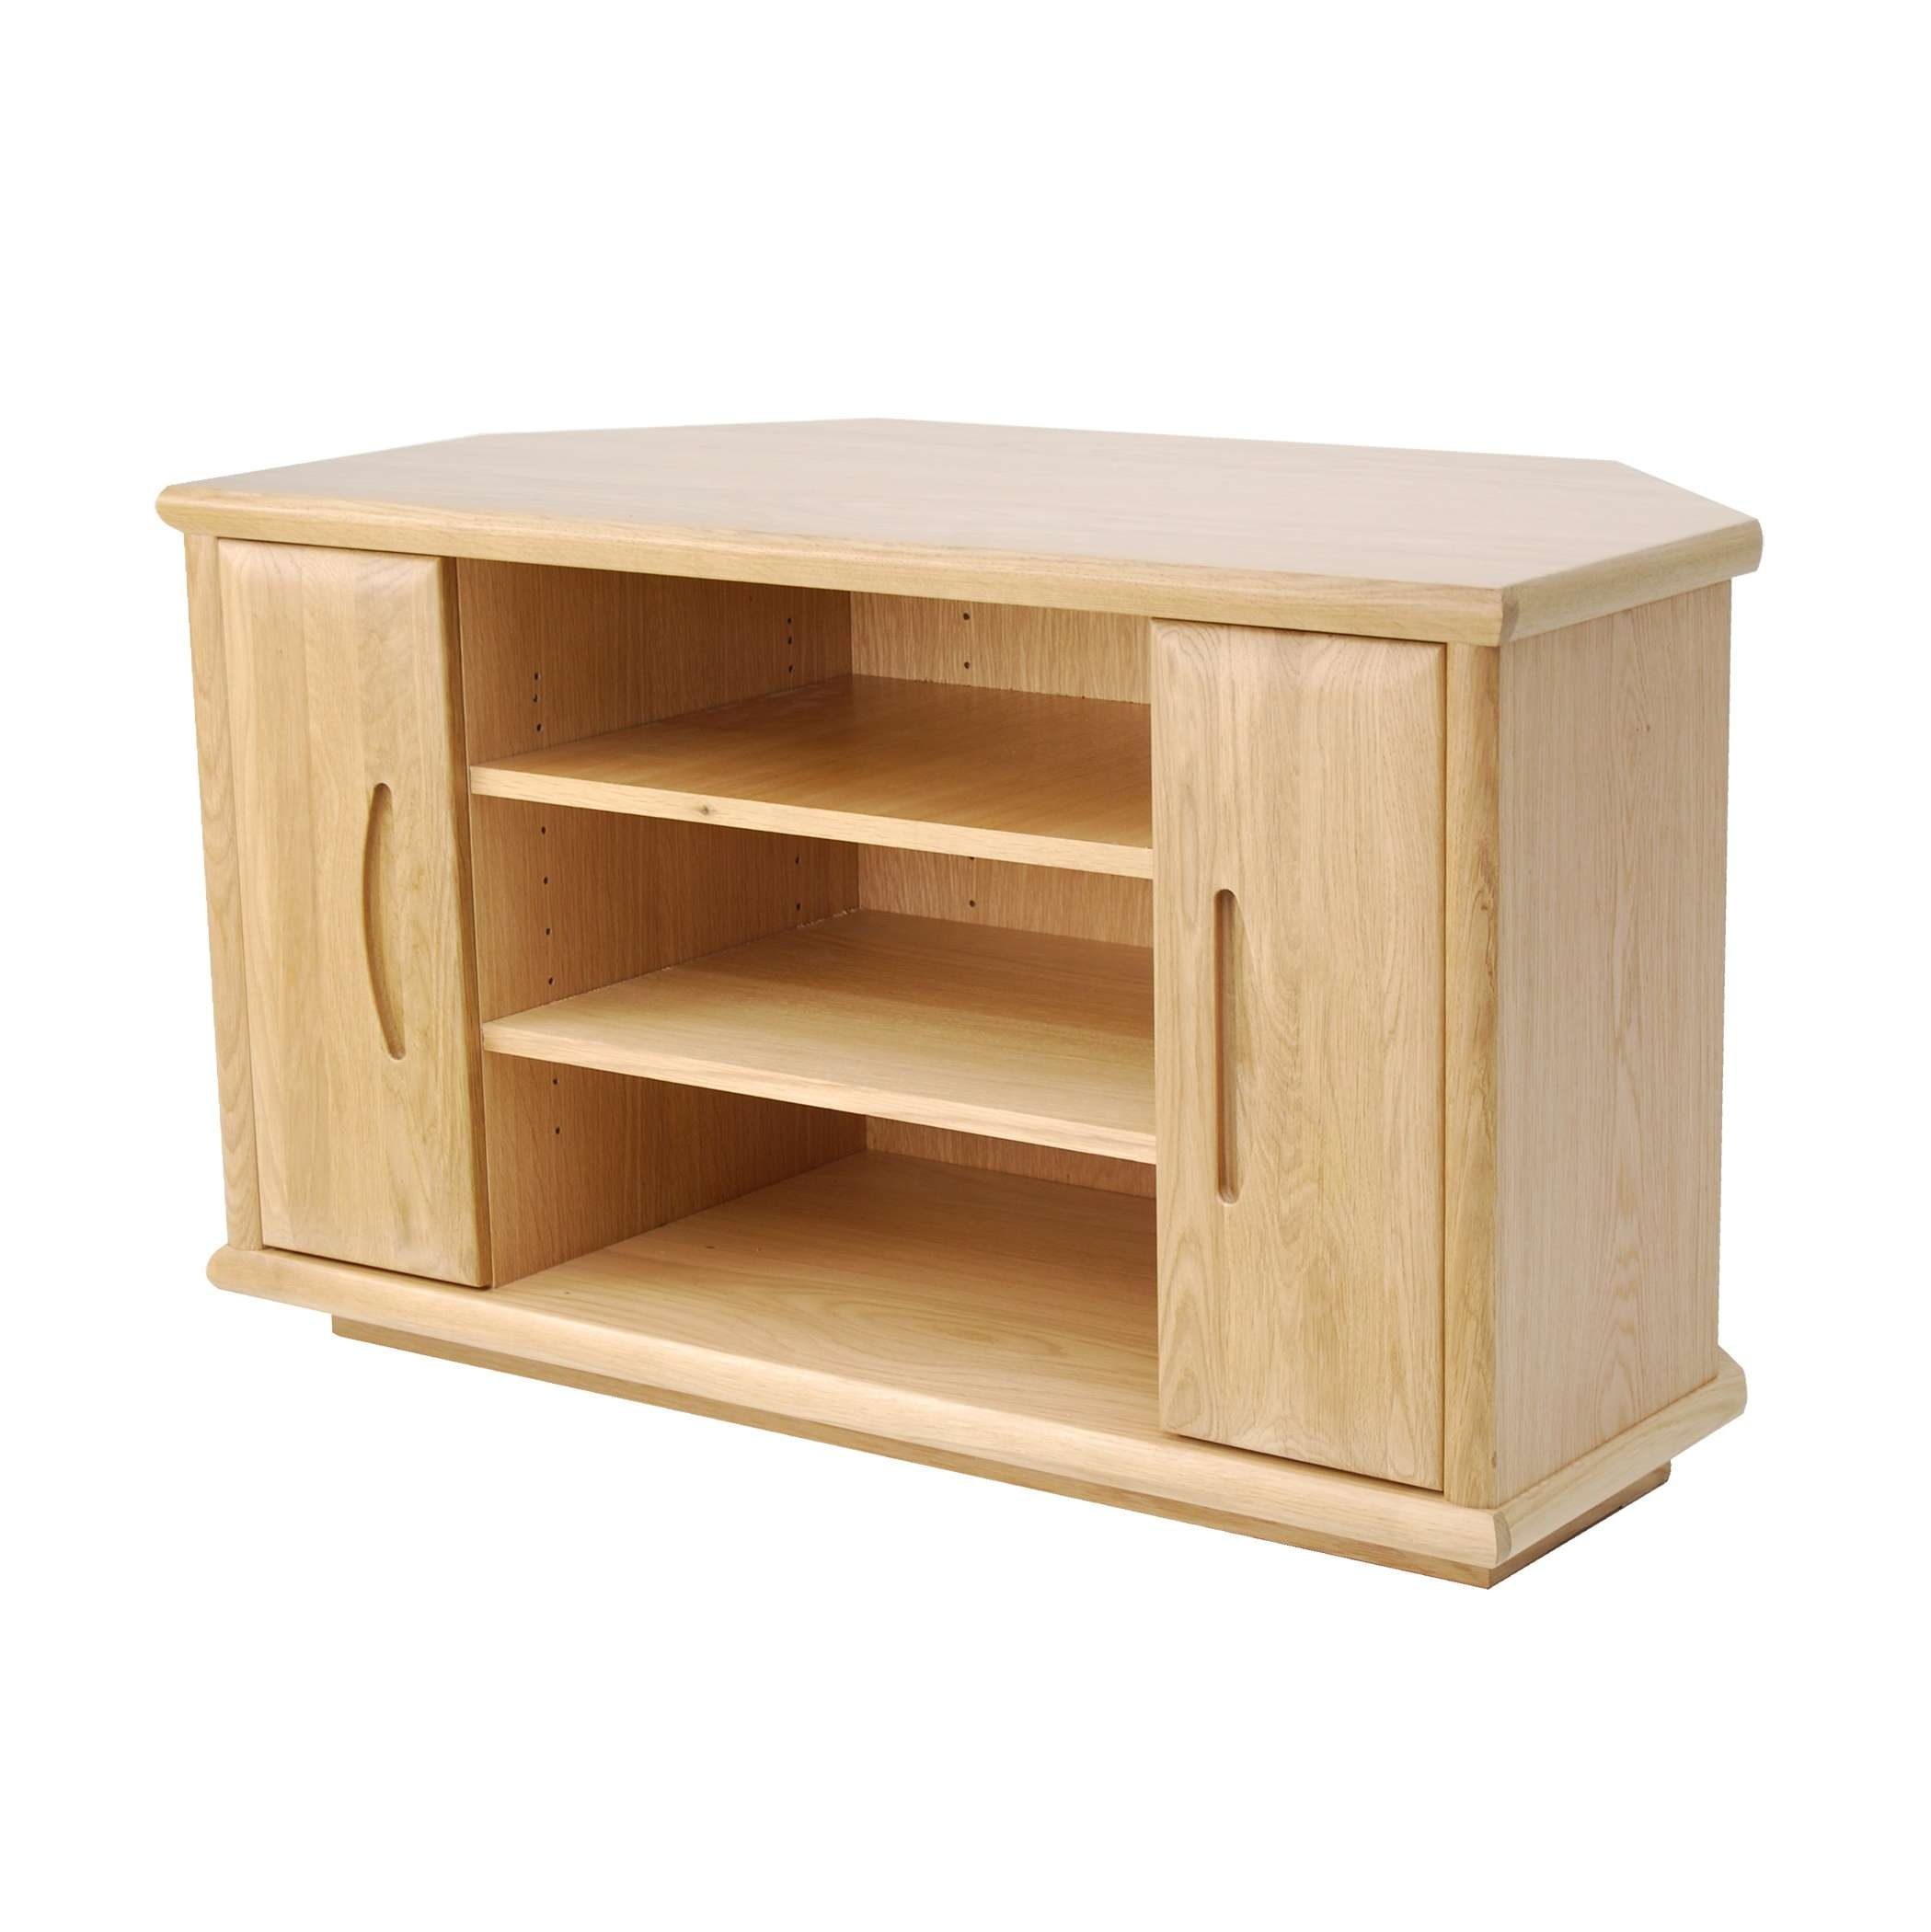 Oak Corner Tv Stand | Gola Furniture Uk In Oak Corner Tv Stands (View 9 of 15)